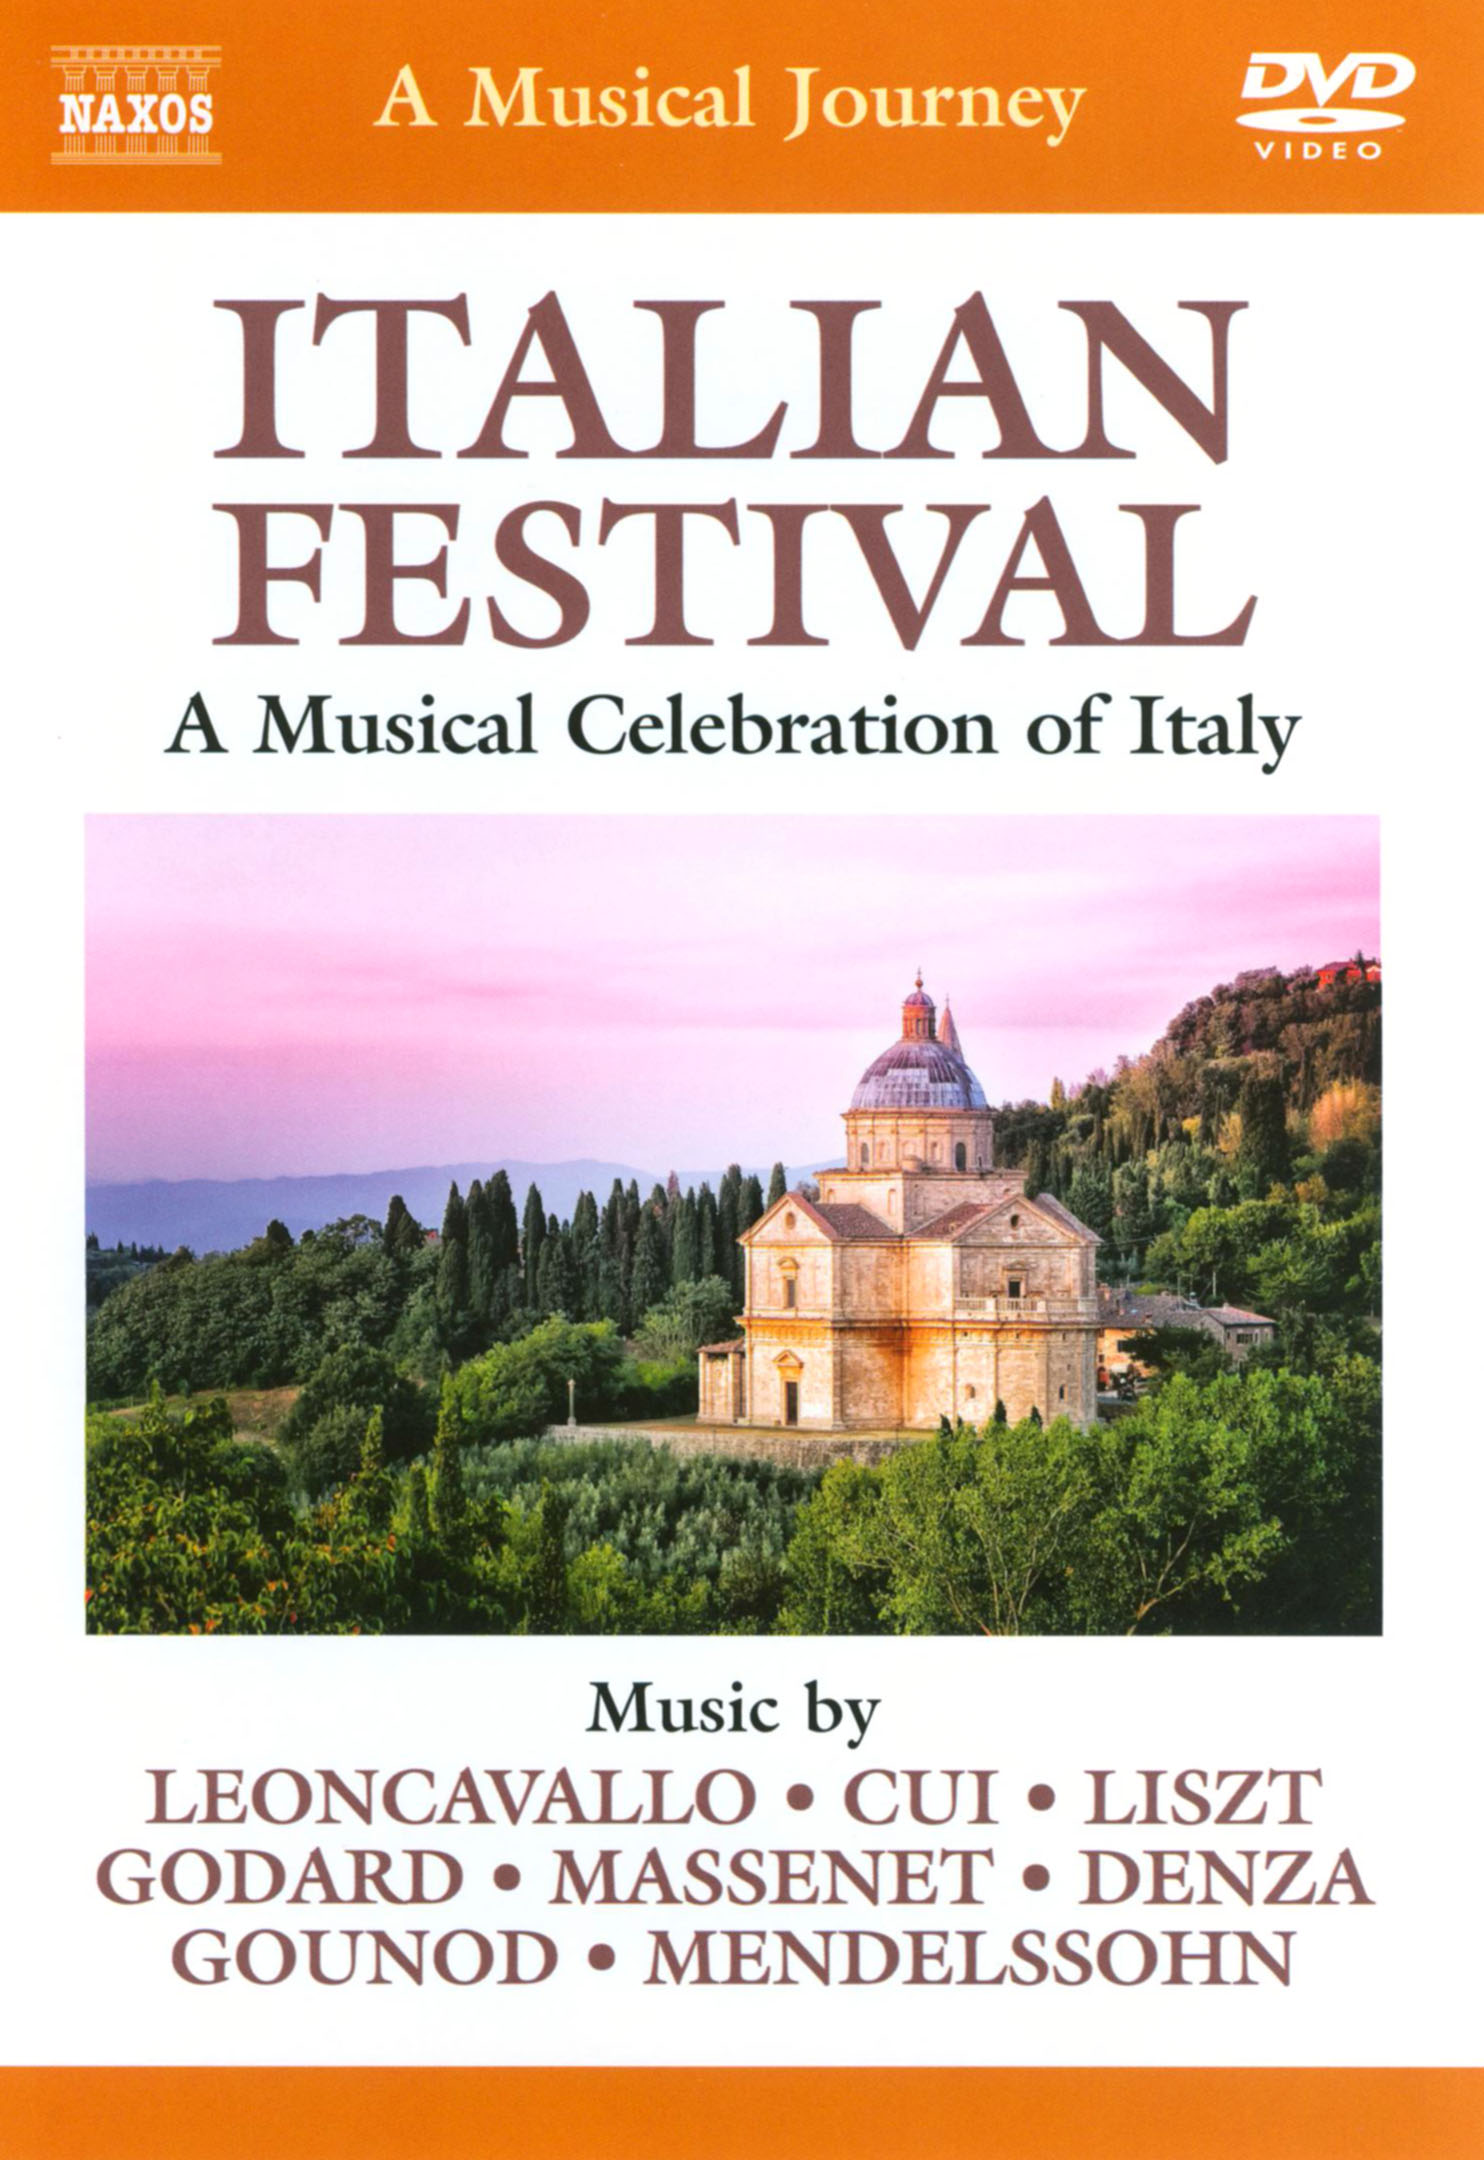 A Musical Journey: Italian Festival - A Musical Celebration of Italy